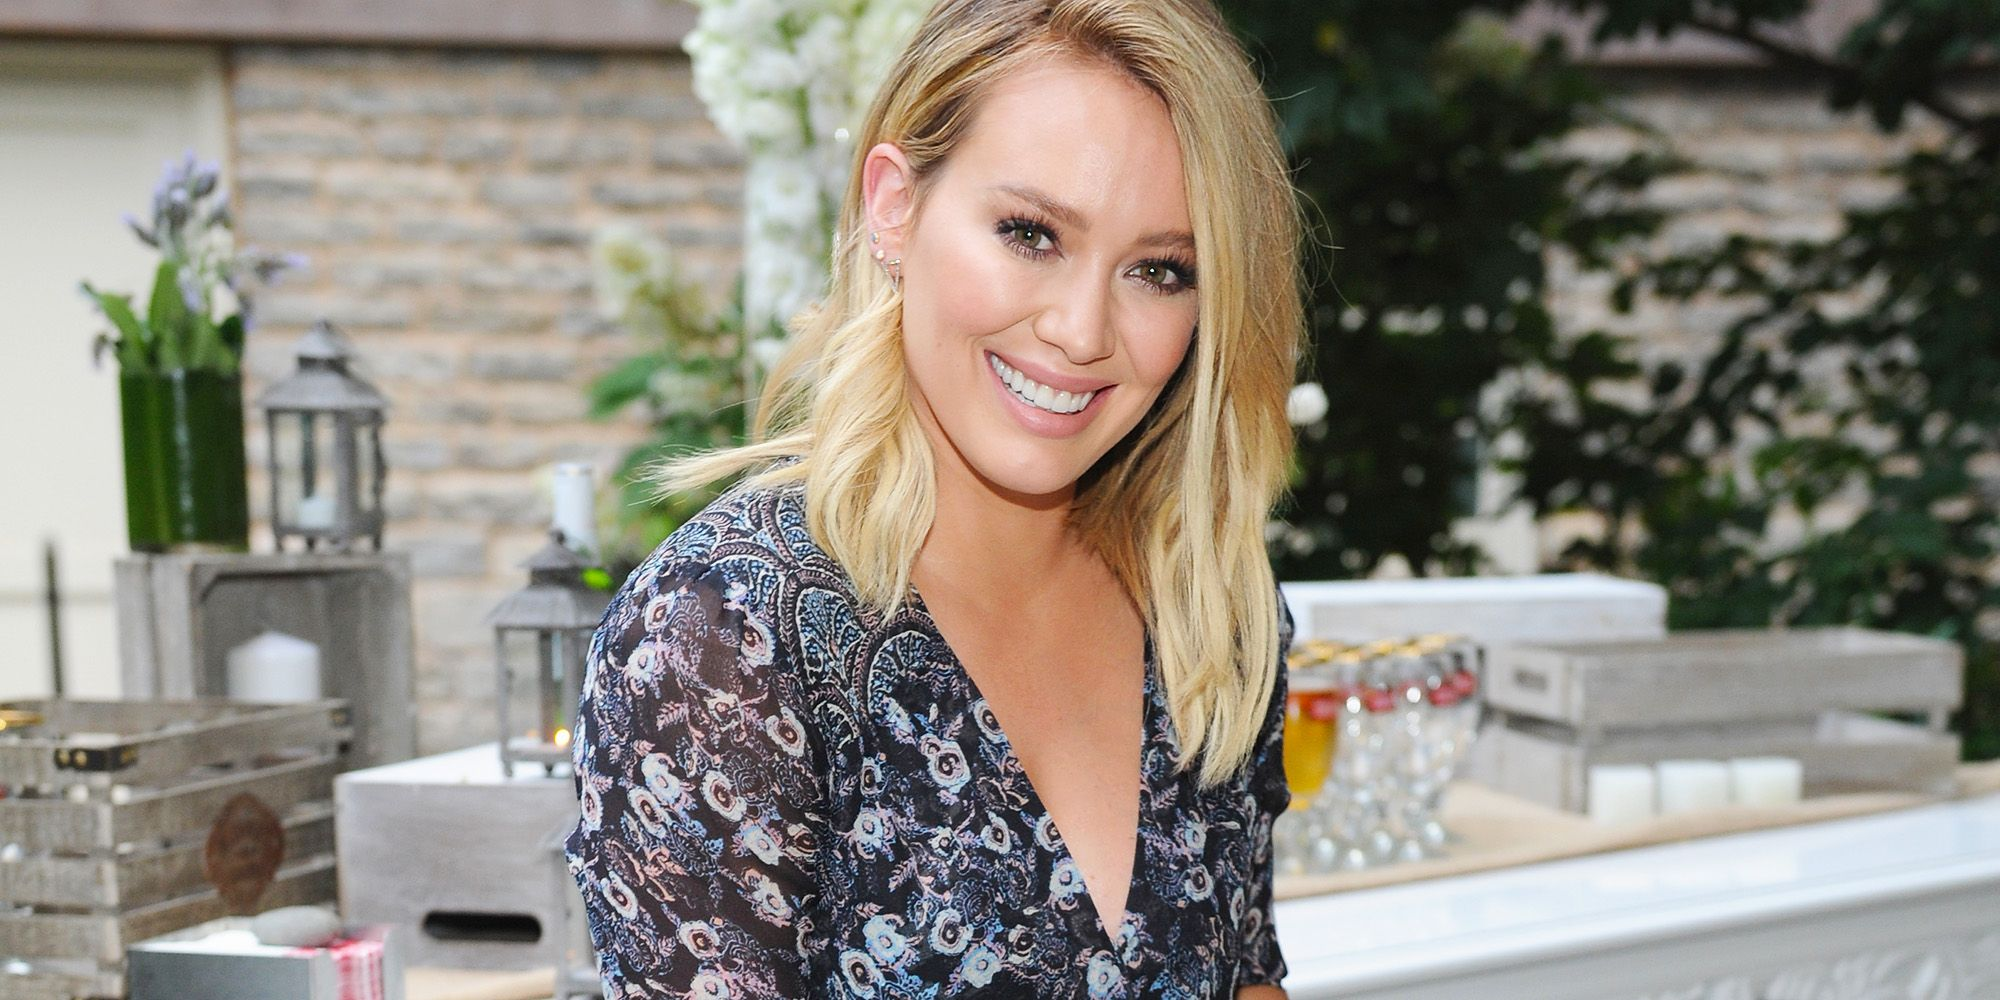 Why Hilary Duff Is Excited to Say Good-Bye to Her 20s Why Hilary Duff Is Excited to Say Good-Bye to Her 20s new foto